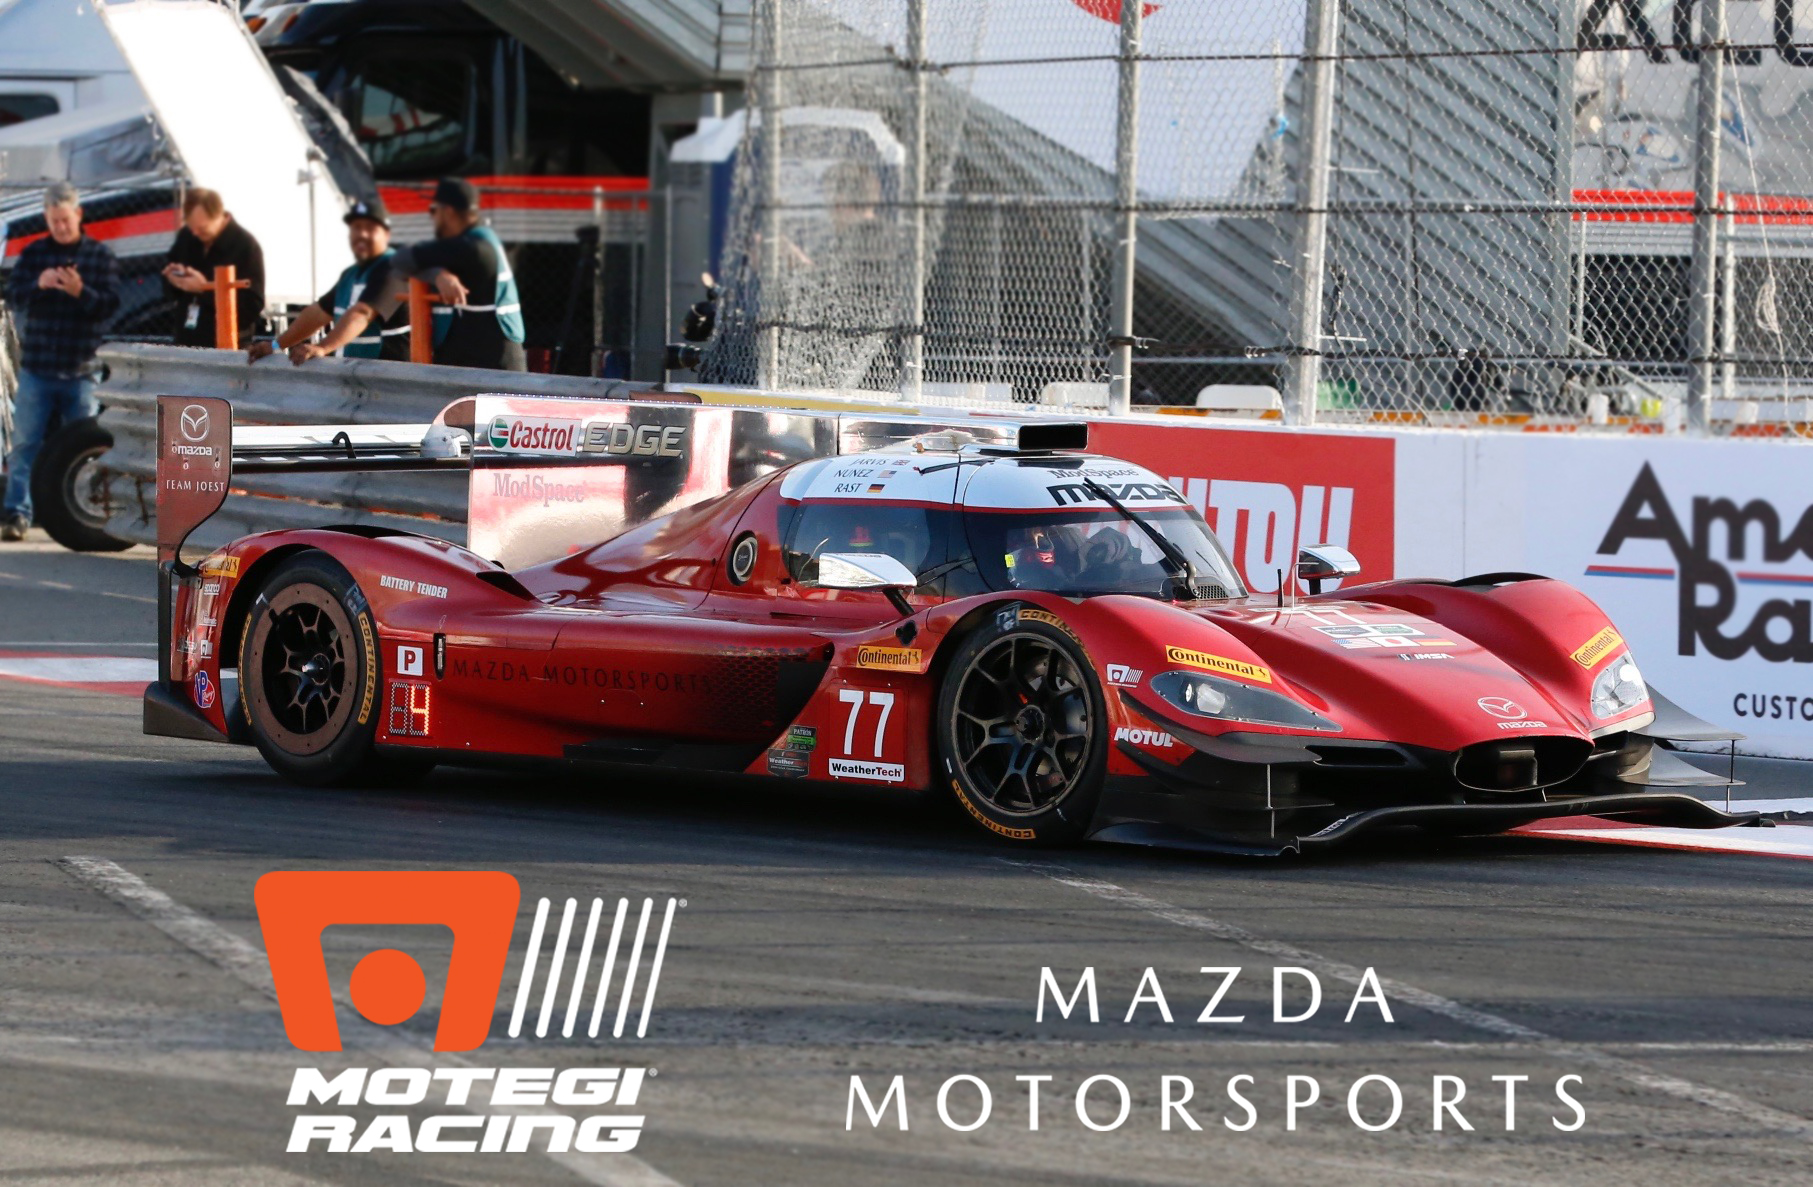 Learn more about the Motegi Racing and Mazda Motorsports Partnership